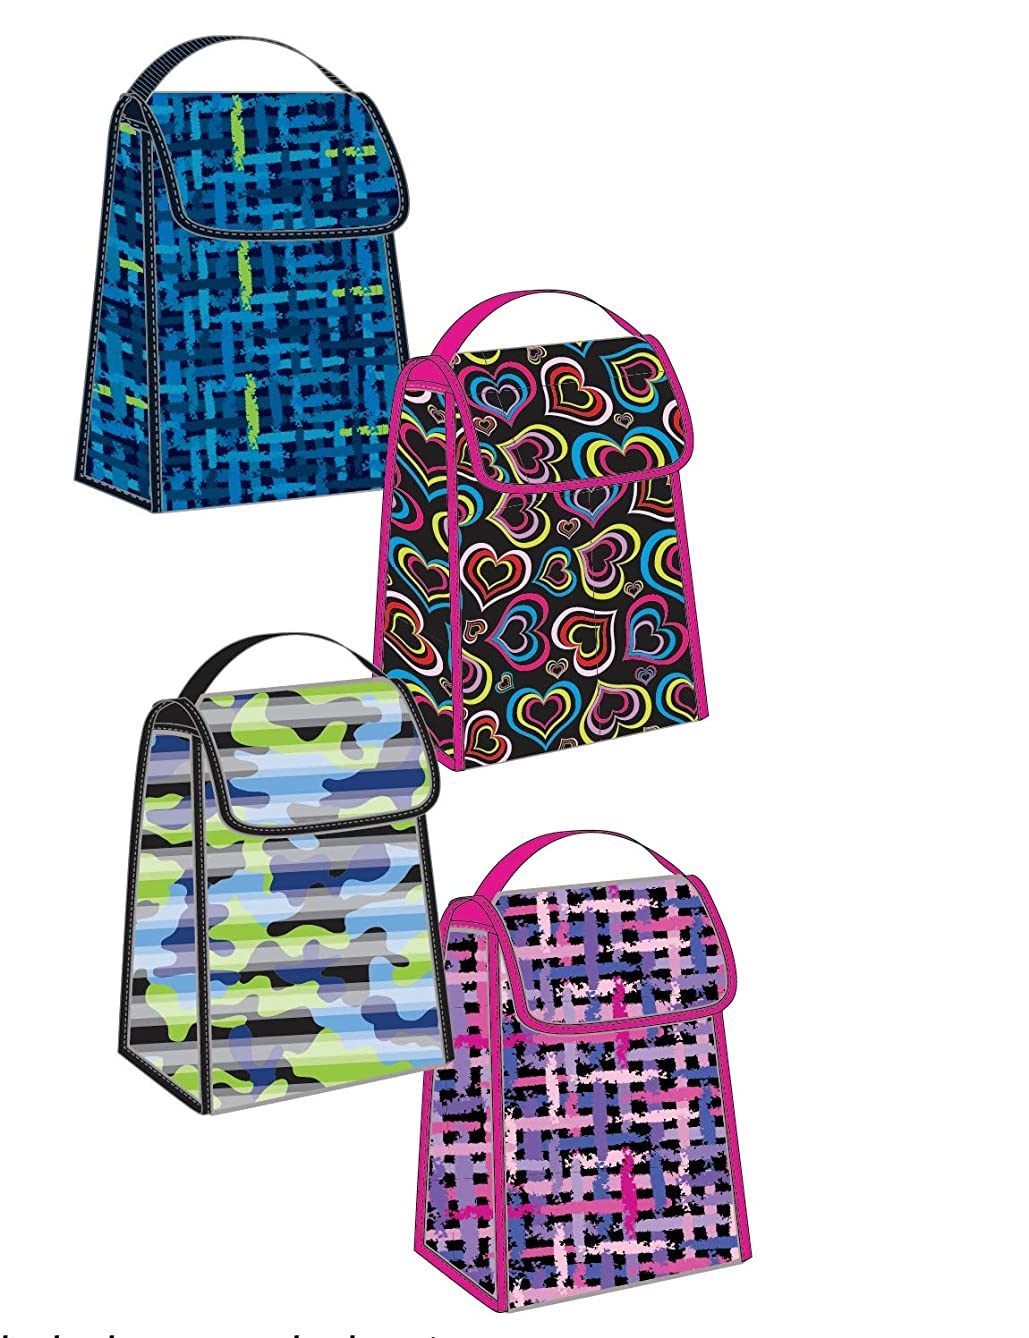 Small 12 inch Foldable Printed Insulated Lunch Bag with Handle and Main Pocket Pvc-free! (Multi-colored heart design)